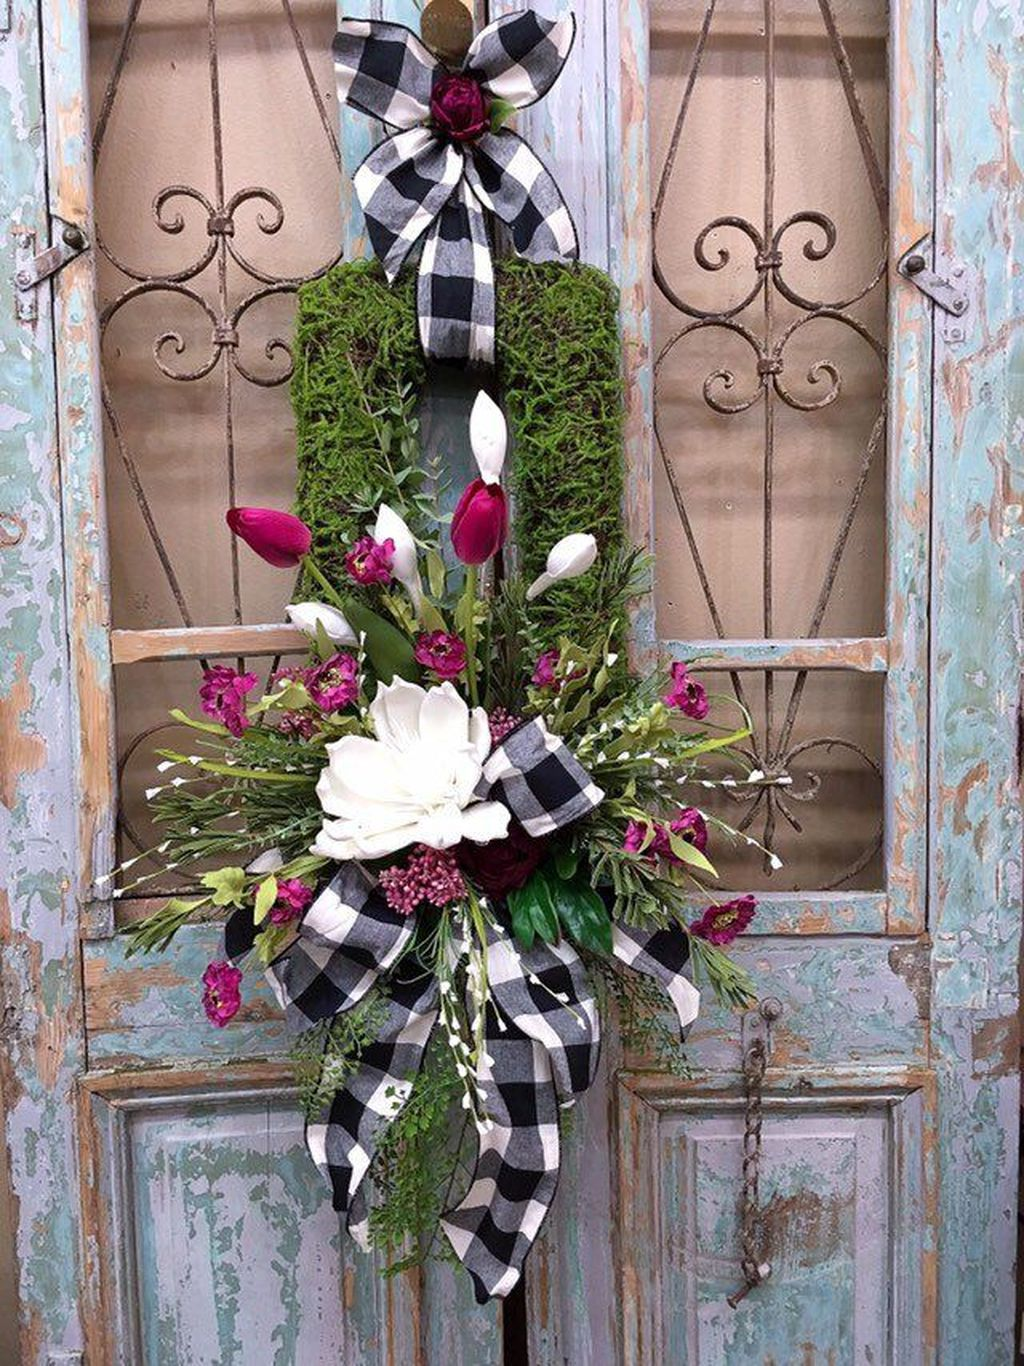 Inspiring Summer Wreath Design Ideas You Should Copy 14